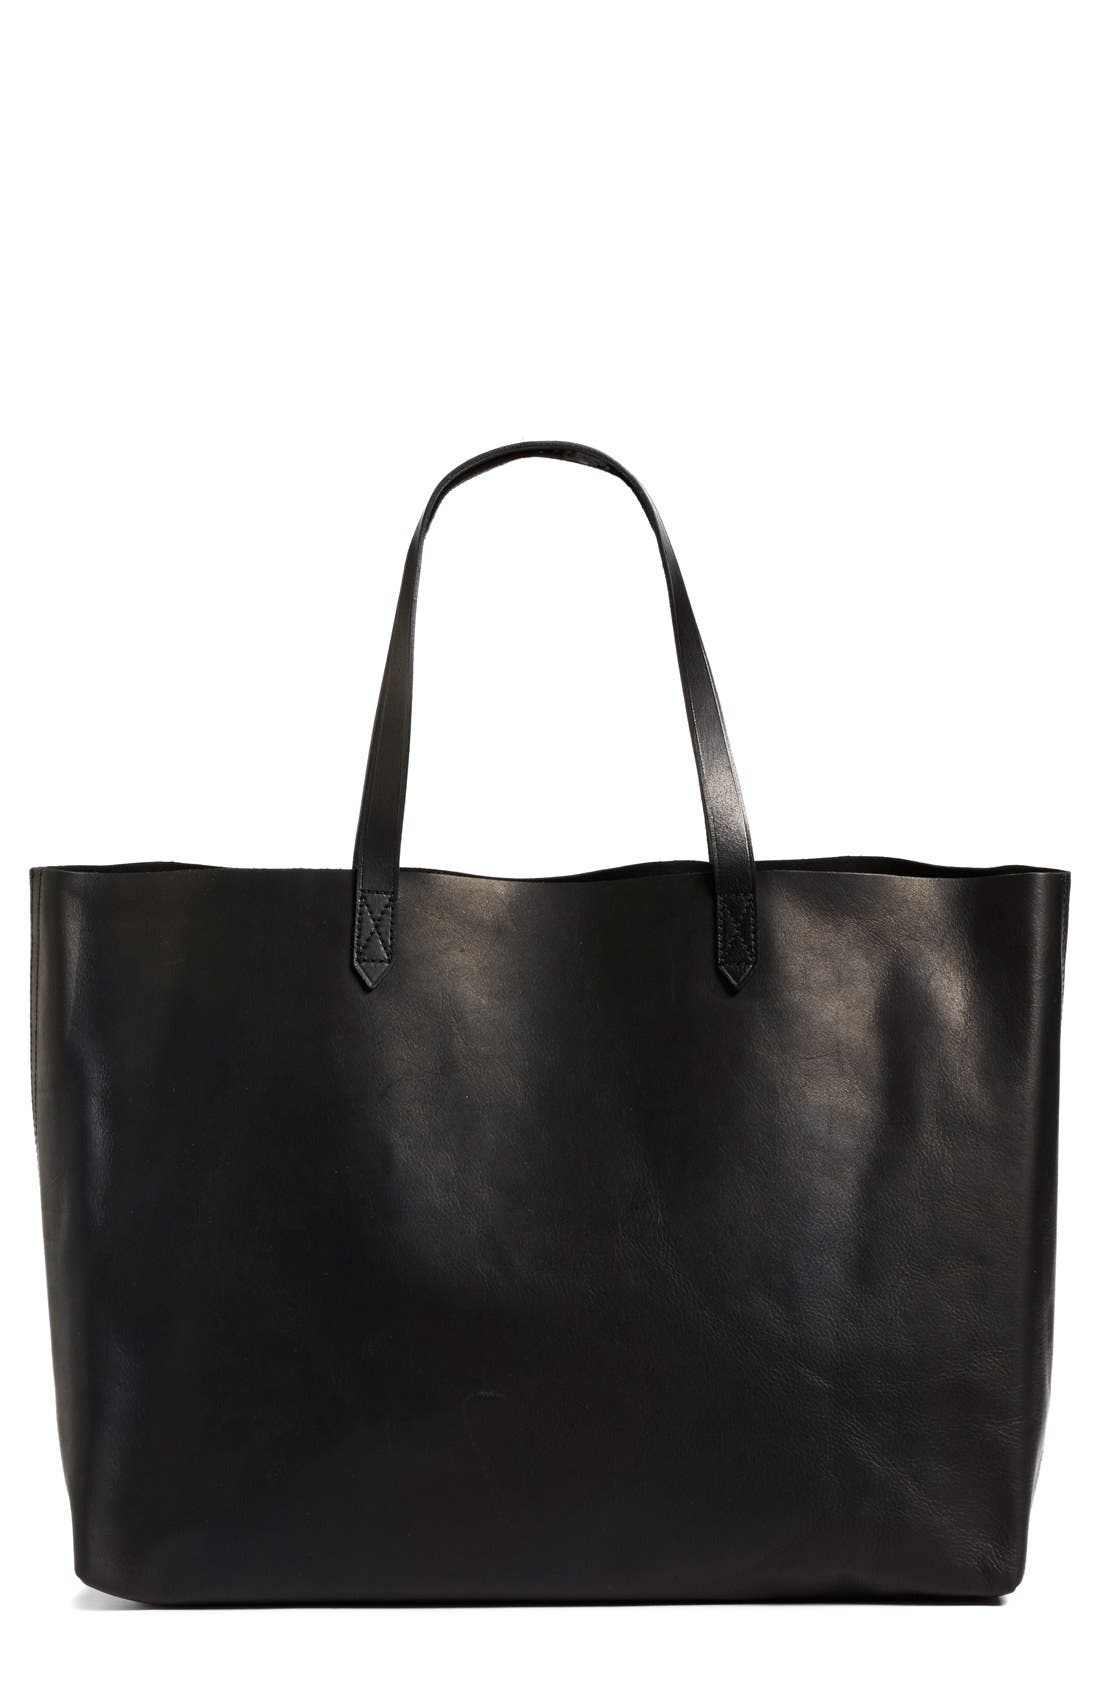 Alternate Image 1 Selected - Madewell 'The East-West Transport' Leather Tote